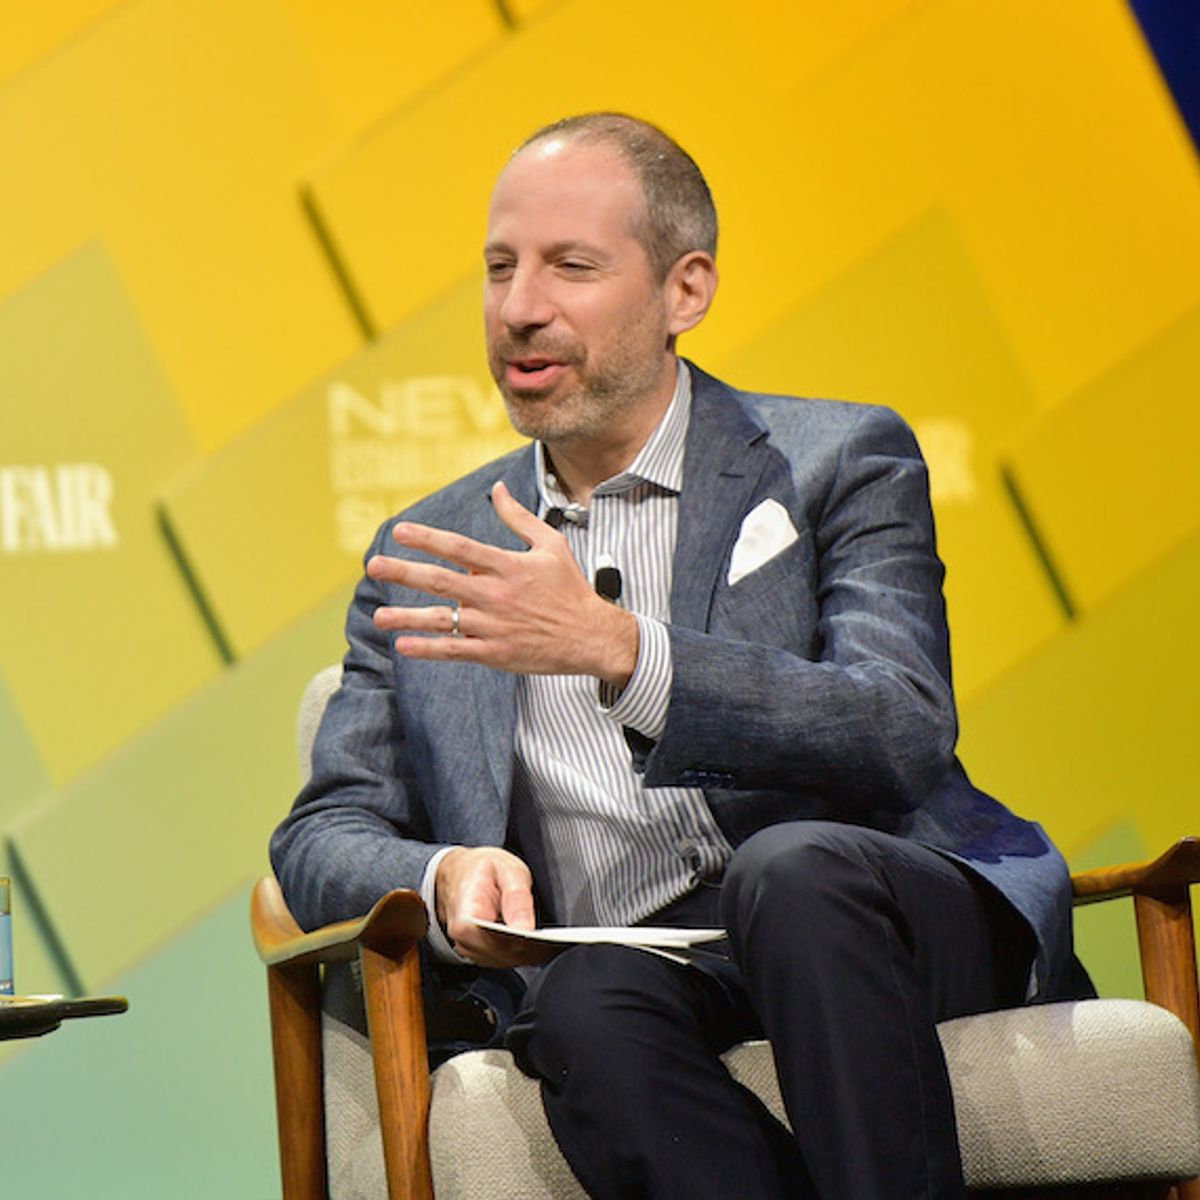 """""""Many people are unhappy"""": NBC renews Noah Oppenheim's contract amid fallout from """"Catch and Kill"""""""